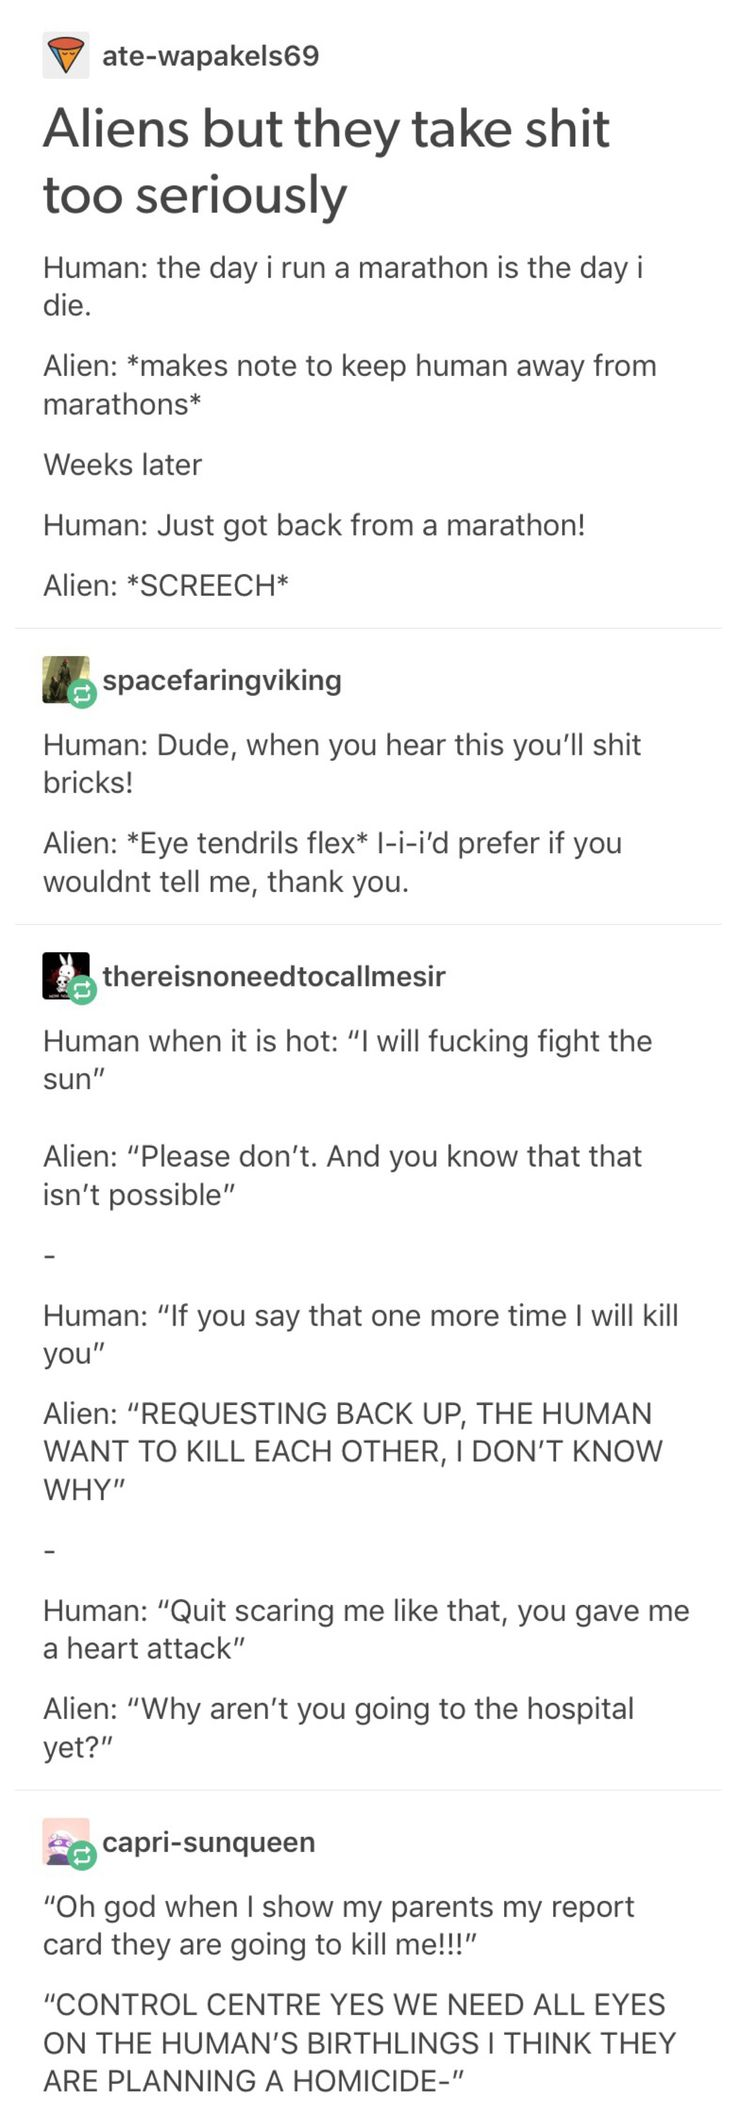 Aliens taking shit too seriously